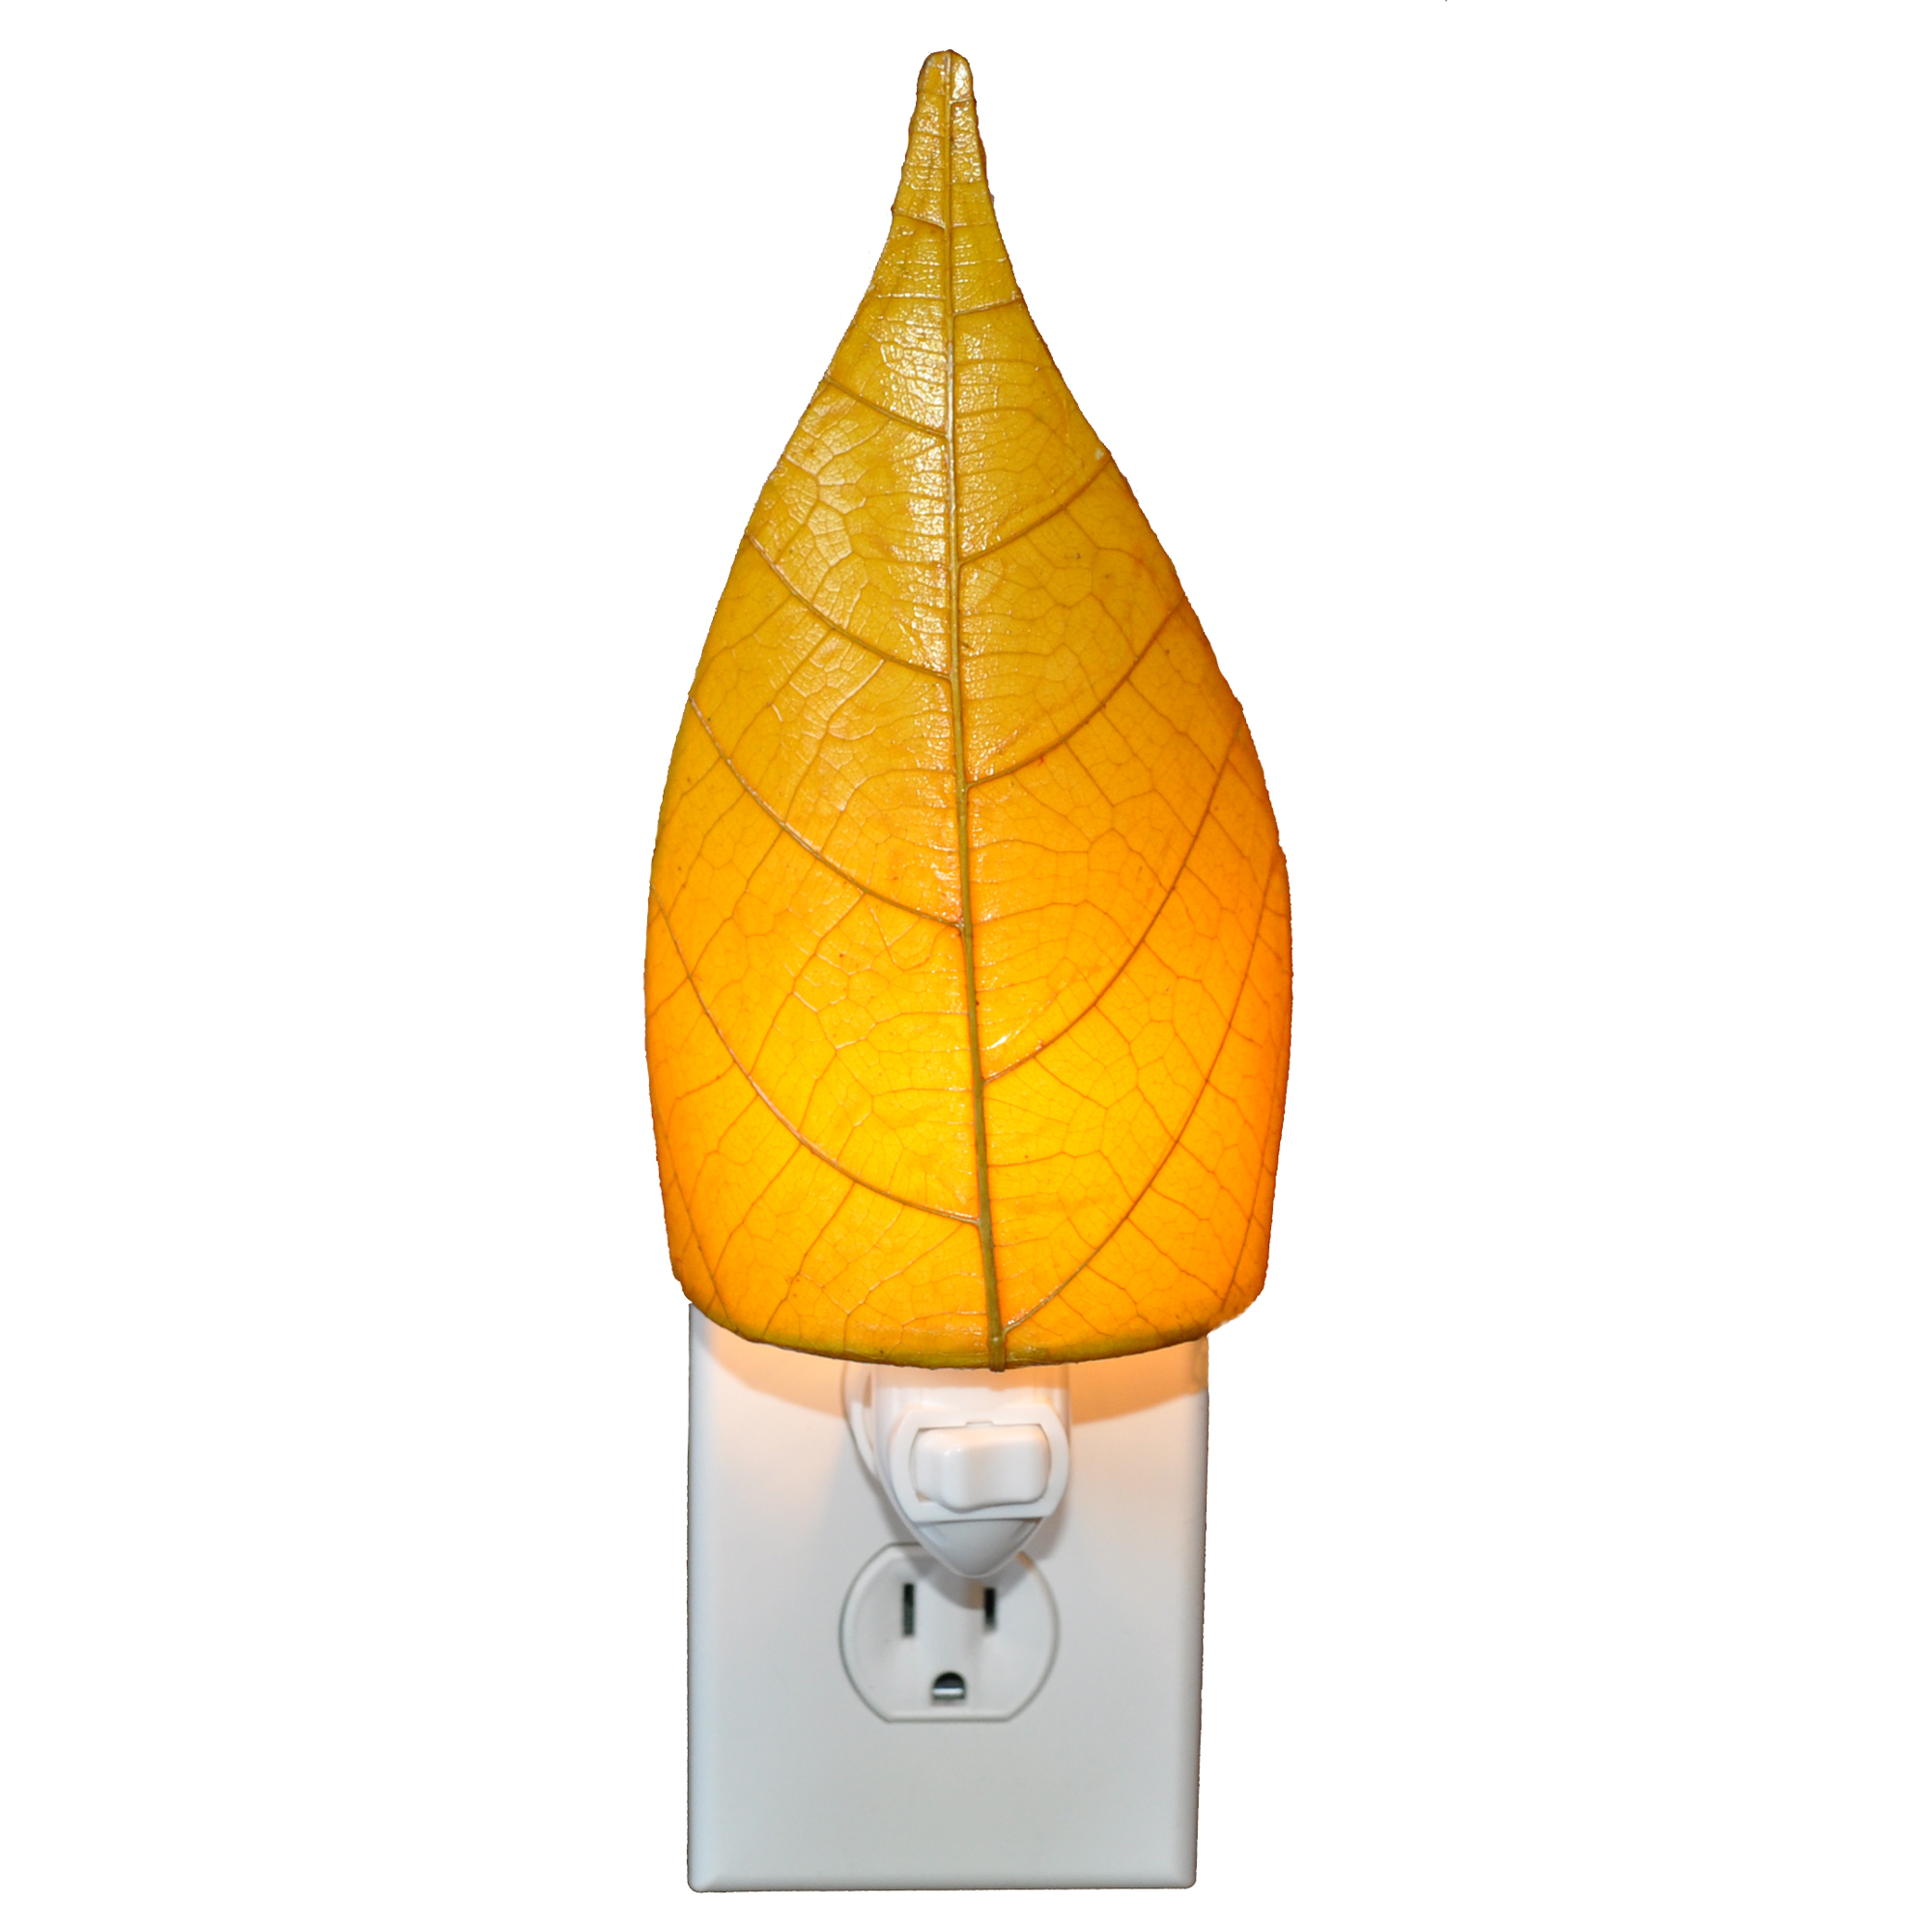 Fossilized Cocoa Leaf Nightlight made in the  Philippines  by Eangee.